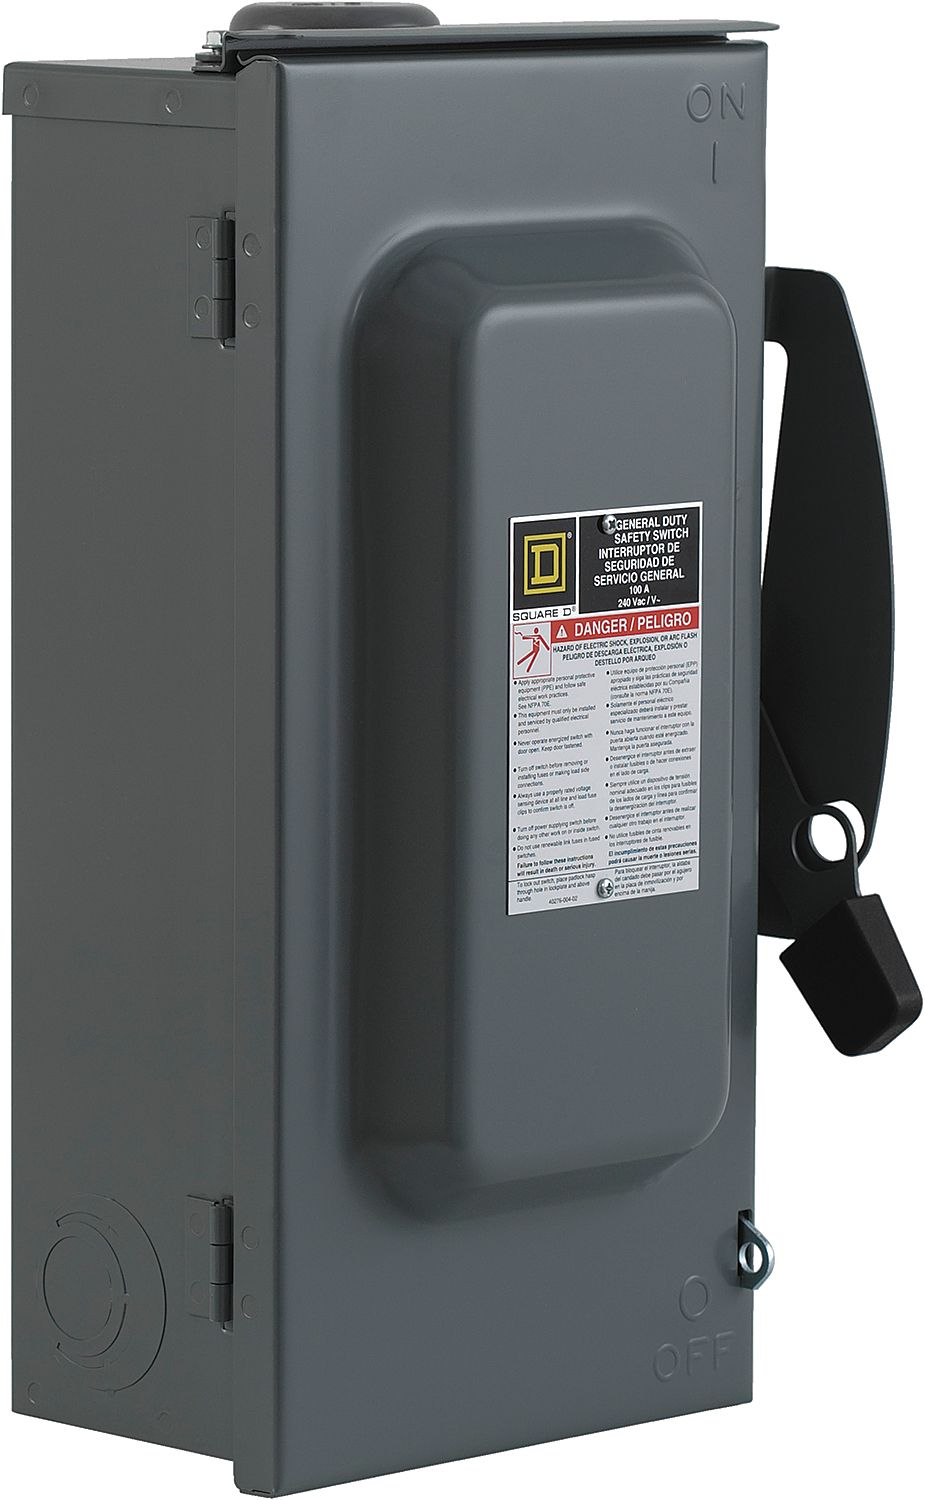 SQUARE D D323NRB 100 Amps AC 240VAC Single Throw Safety Switch 3PST